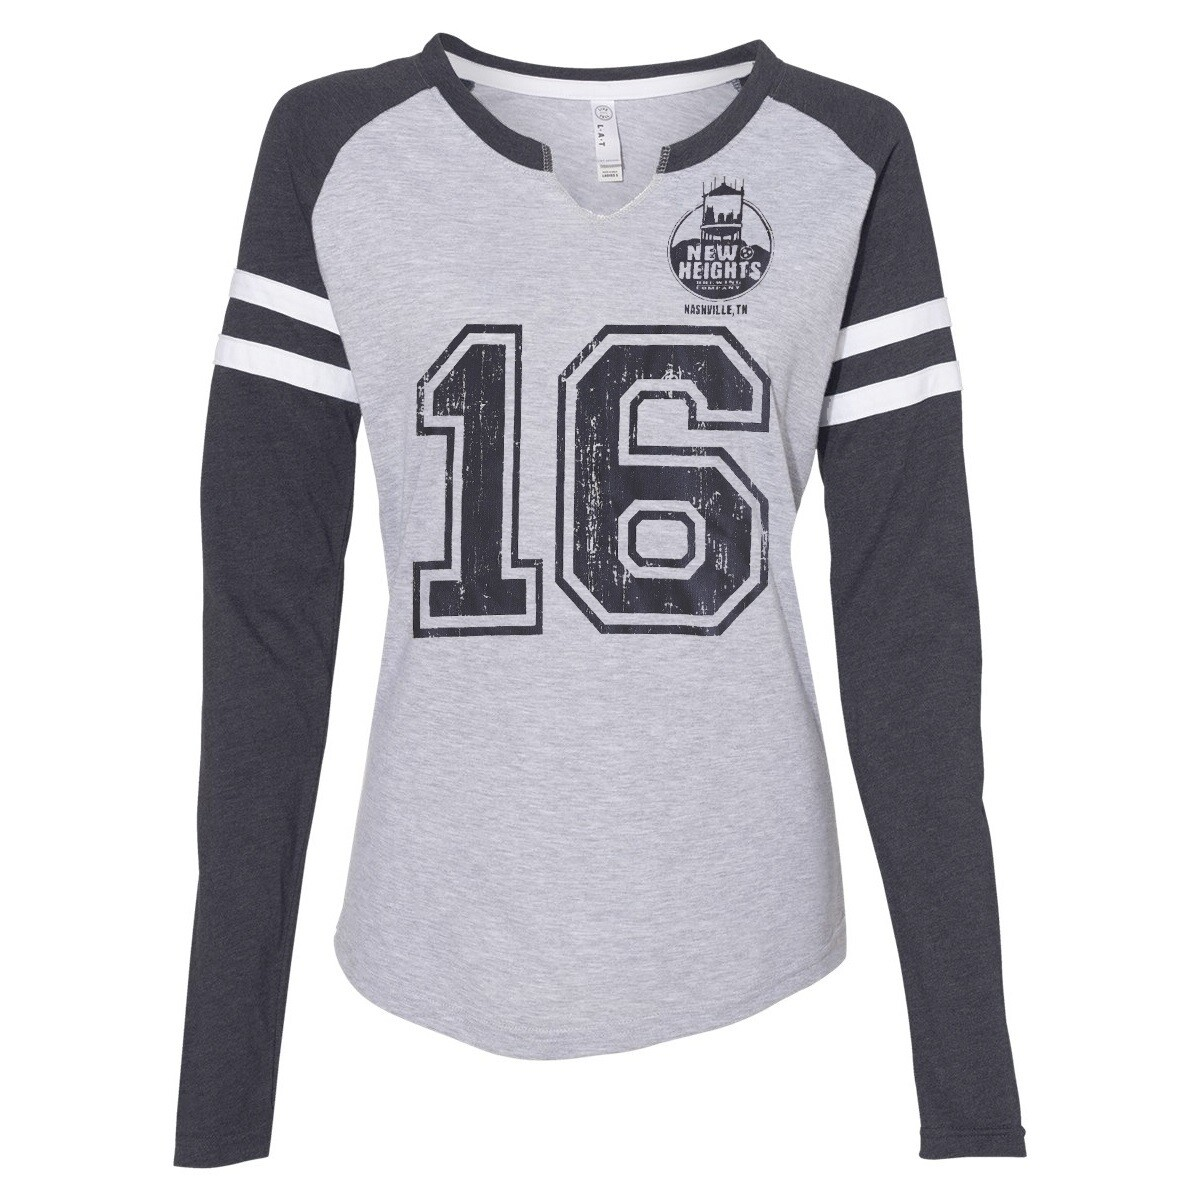 Clearance - Ladies Vintage Game Day Jerzee- Long Sleeve Heather Grey/Heather Navy - #16 for the year we launched (2016)